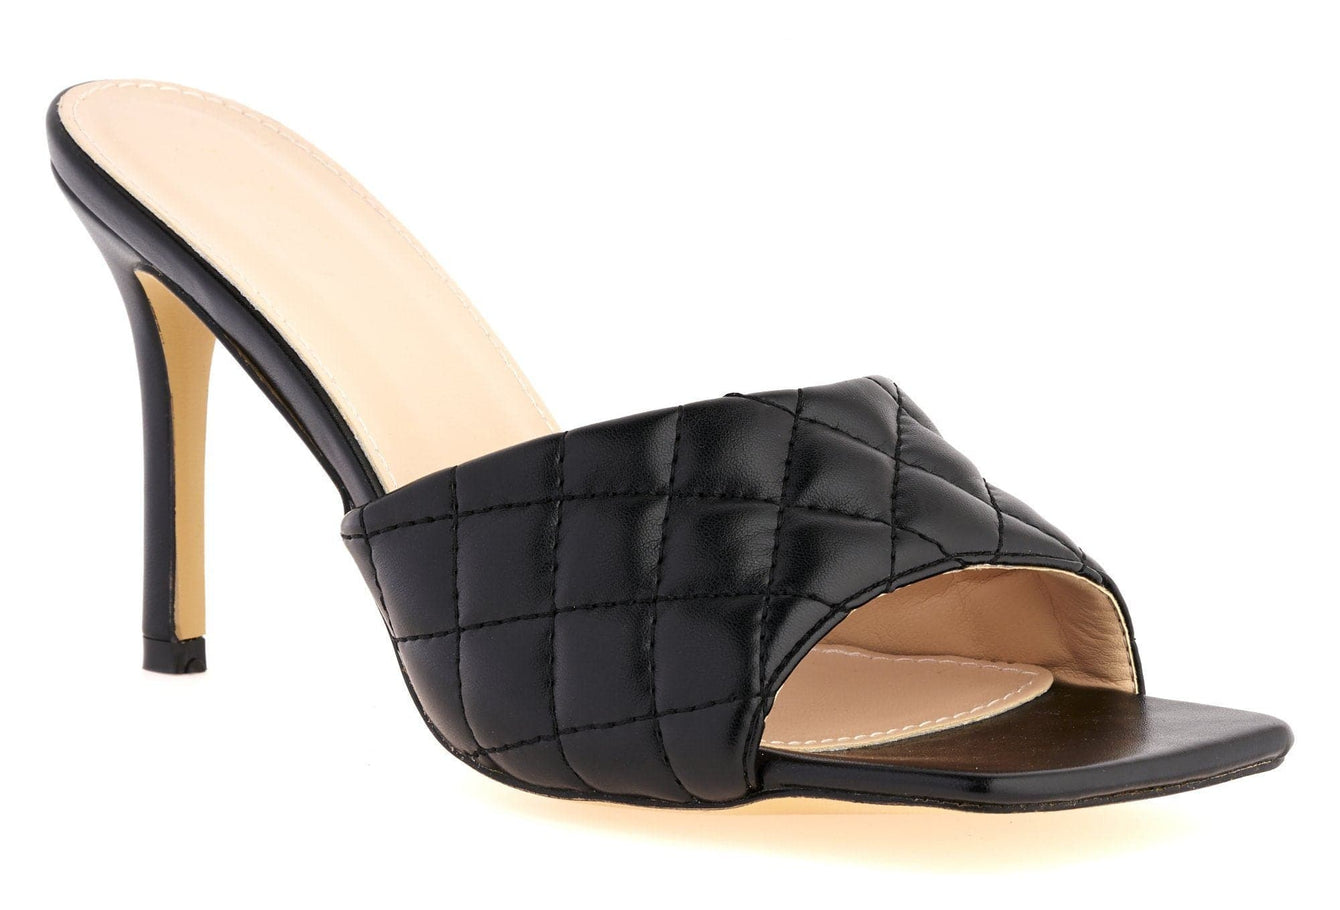 Marian Square Toe Quilted Stiletto Heel Mule in Black